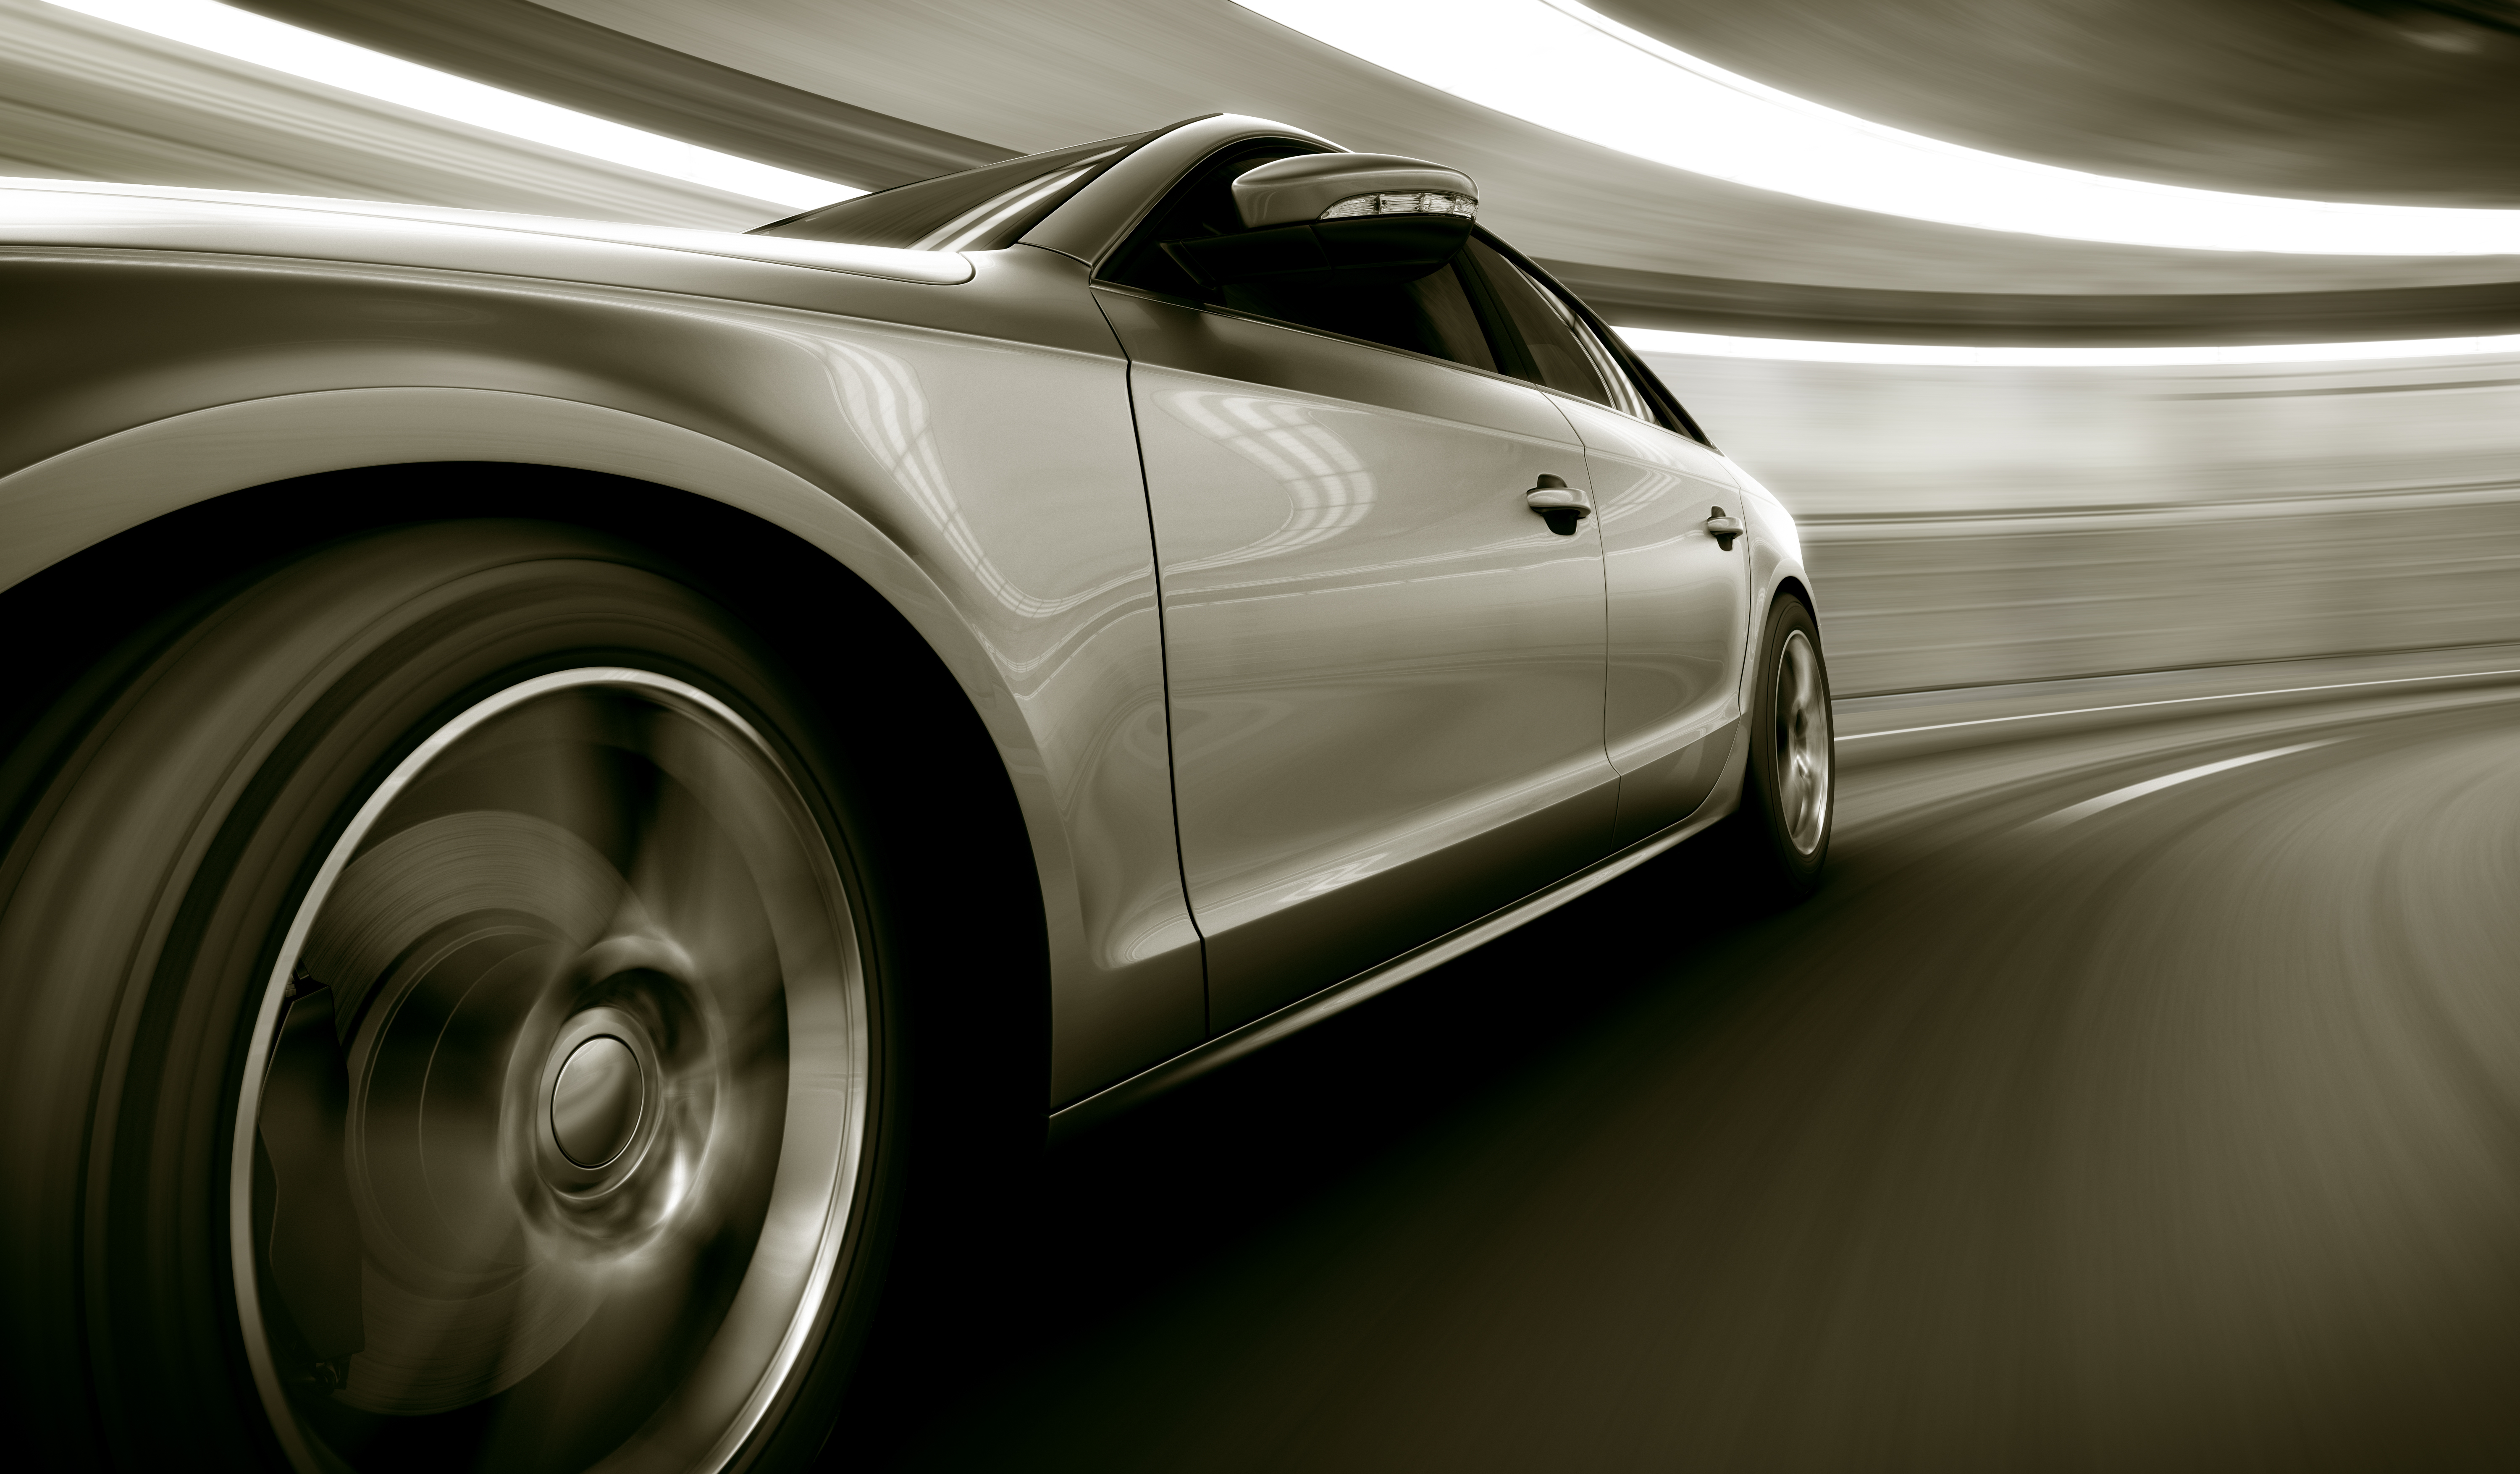 Best tips to save on next car